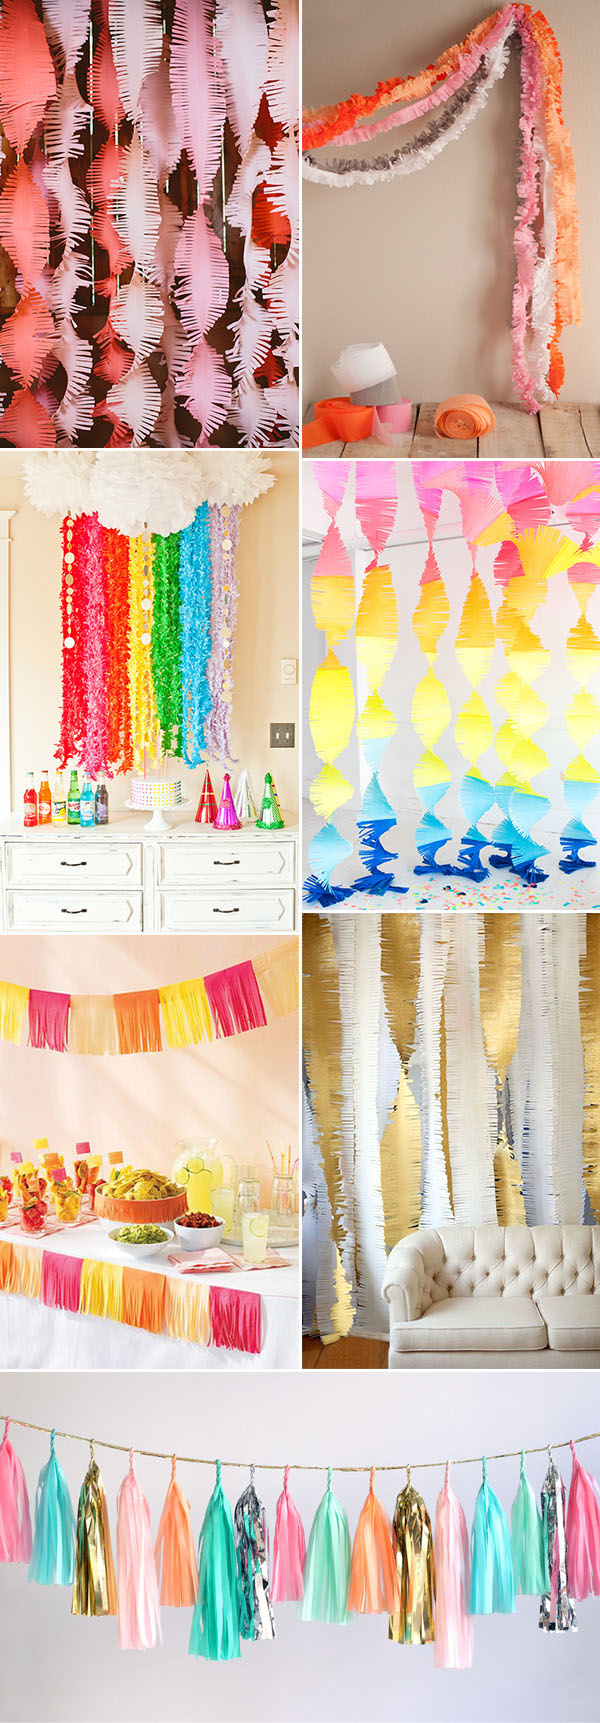 Wedding Decoration Ideas Diy 28 Creative Budget Friendly Diy Wedding Decoration Ideas